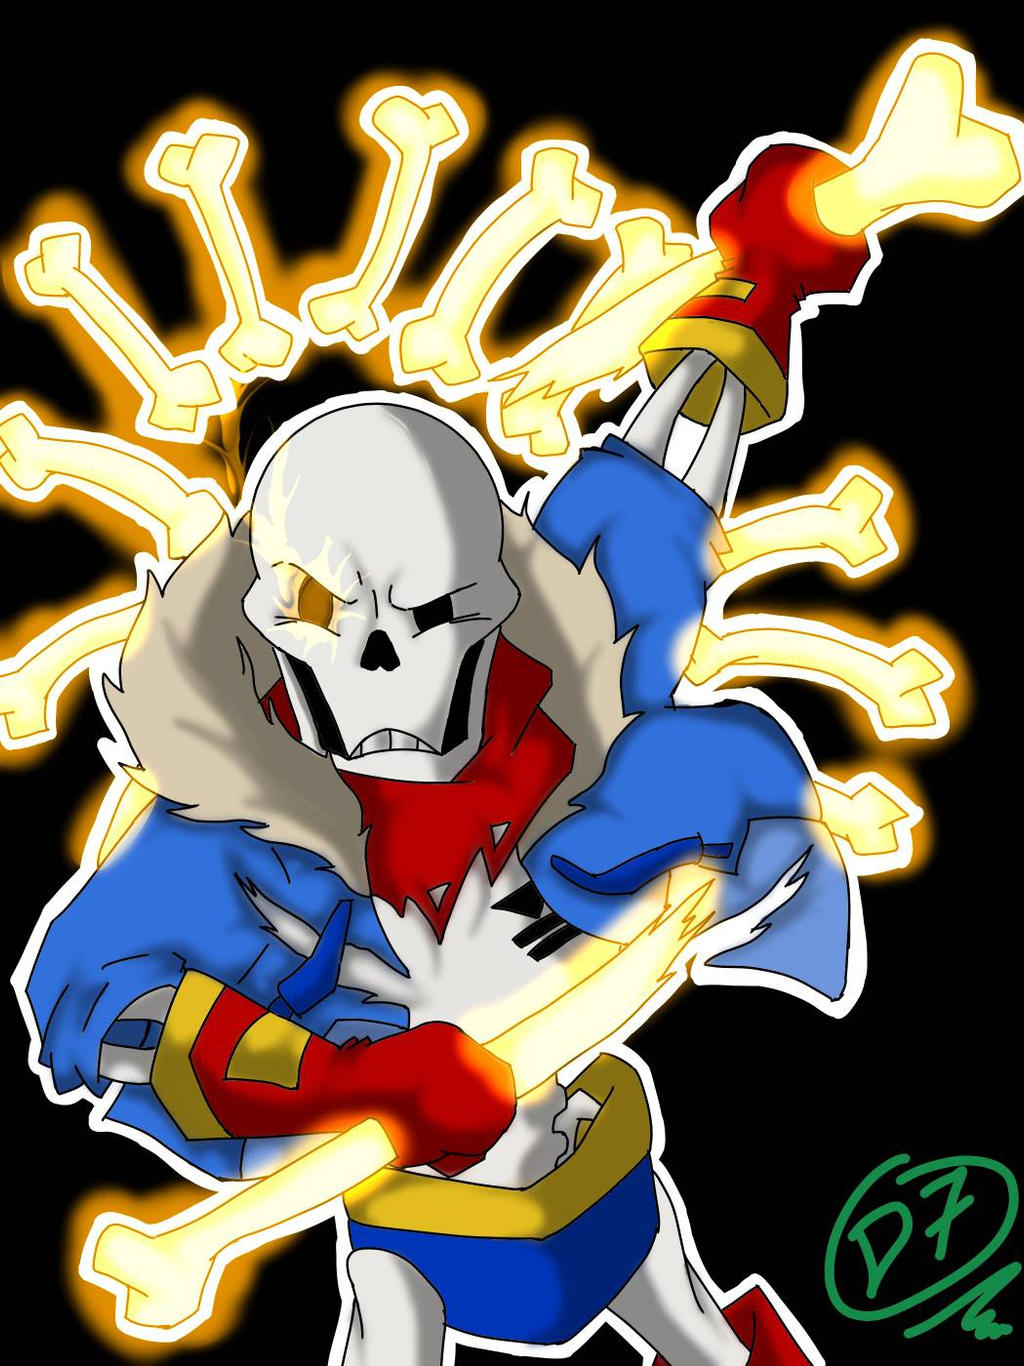 DISBELIEF PAPYRUS PHASE 2 by TheGreatD7 on DeviantArt